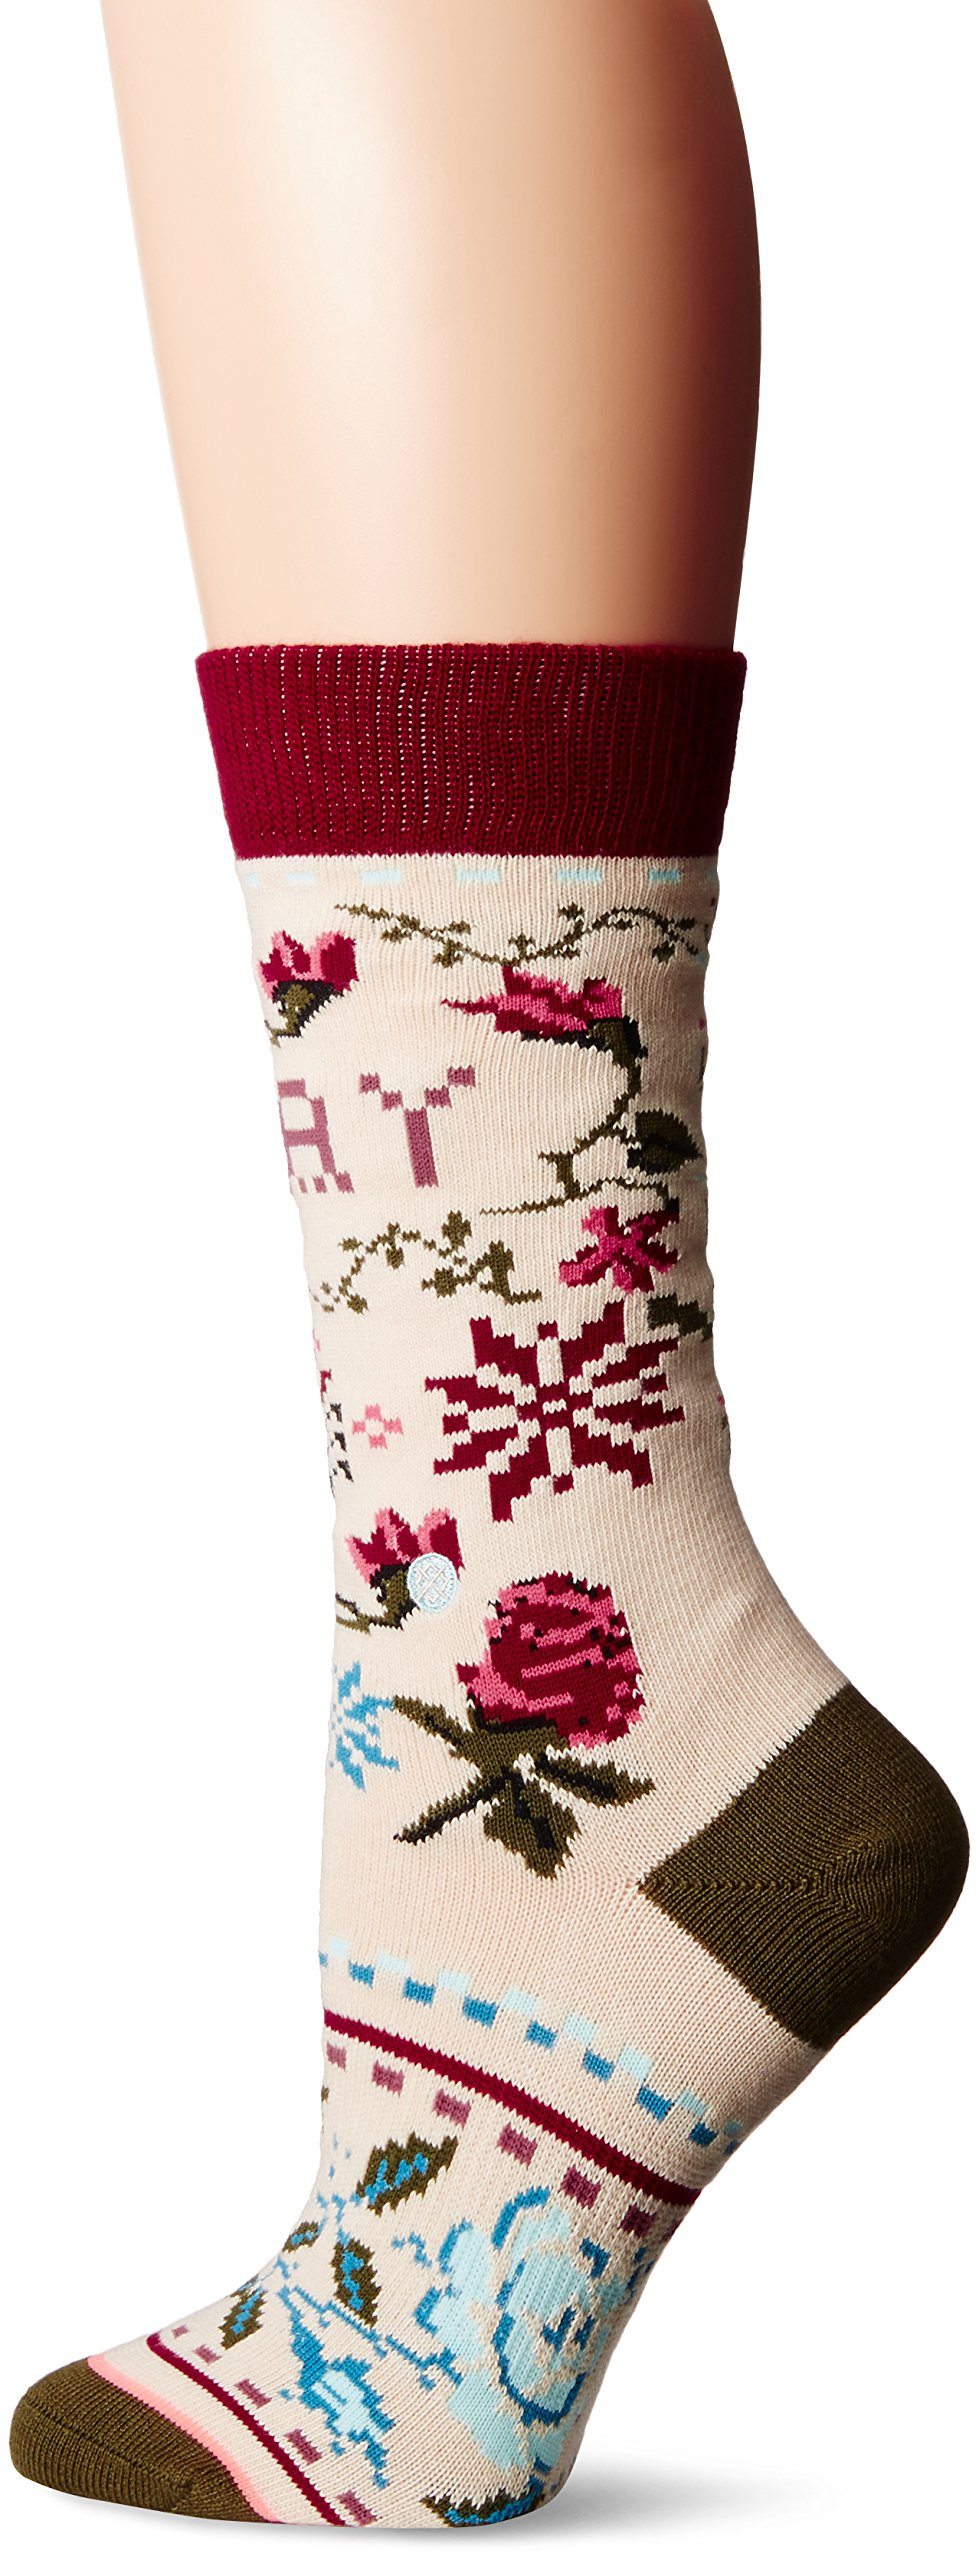 Stance Women's Slay Ride Holiday Arch Support Tomboy Crew Sock, Cream, Medium